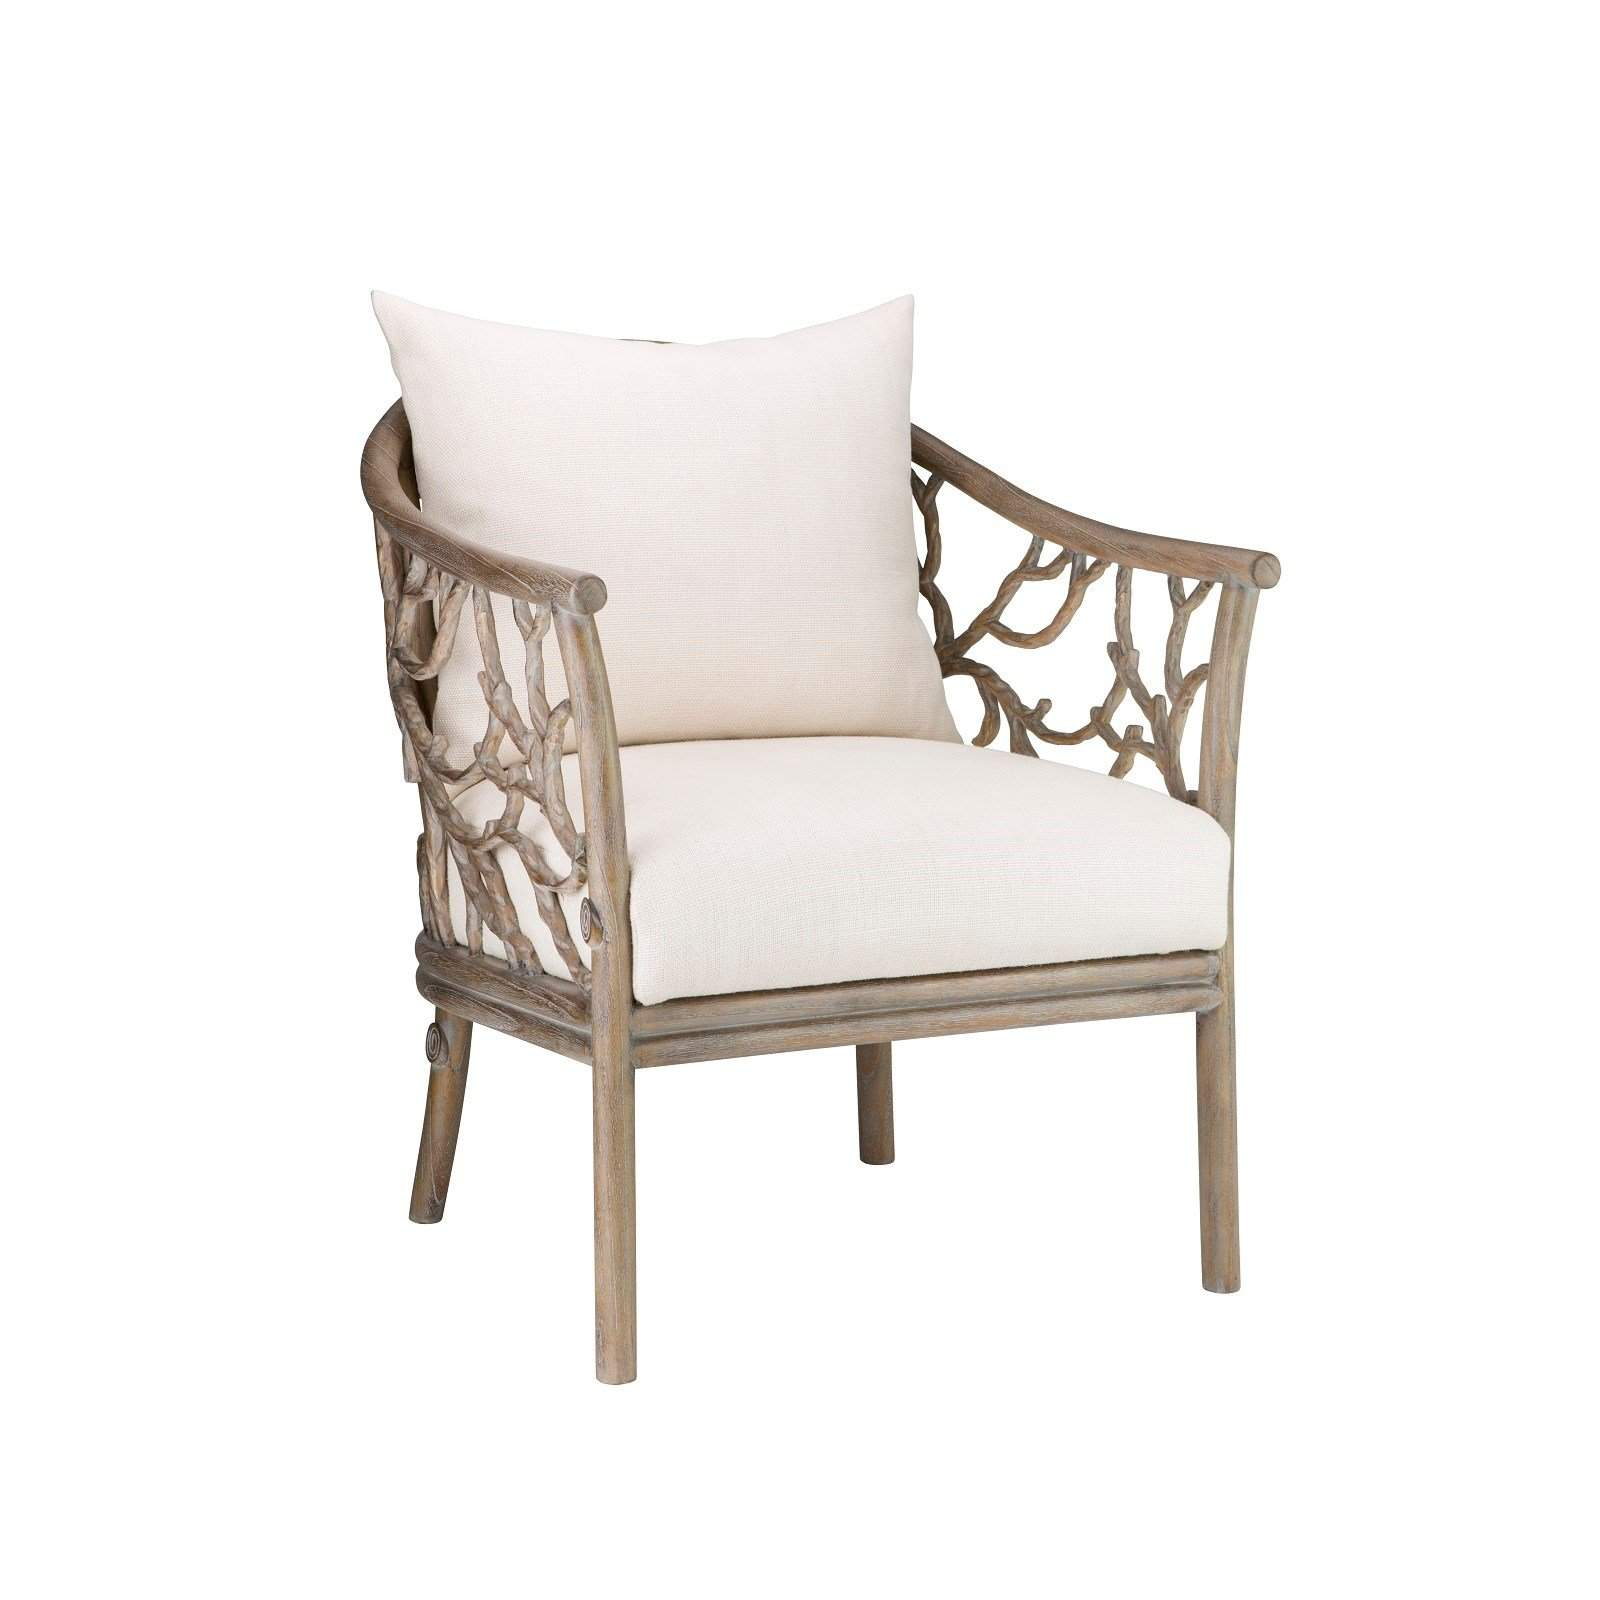 Bungalow 5 - BOSCO ARMCHAIR in DRIFTWOOD